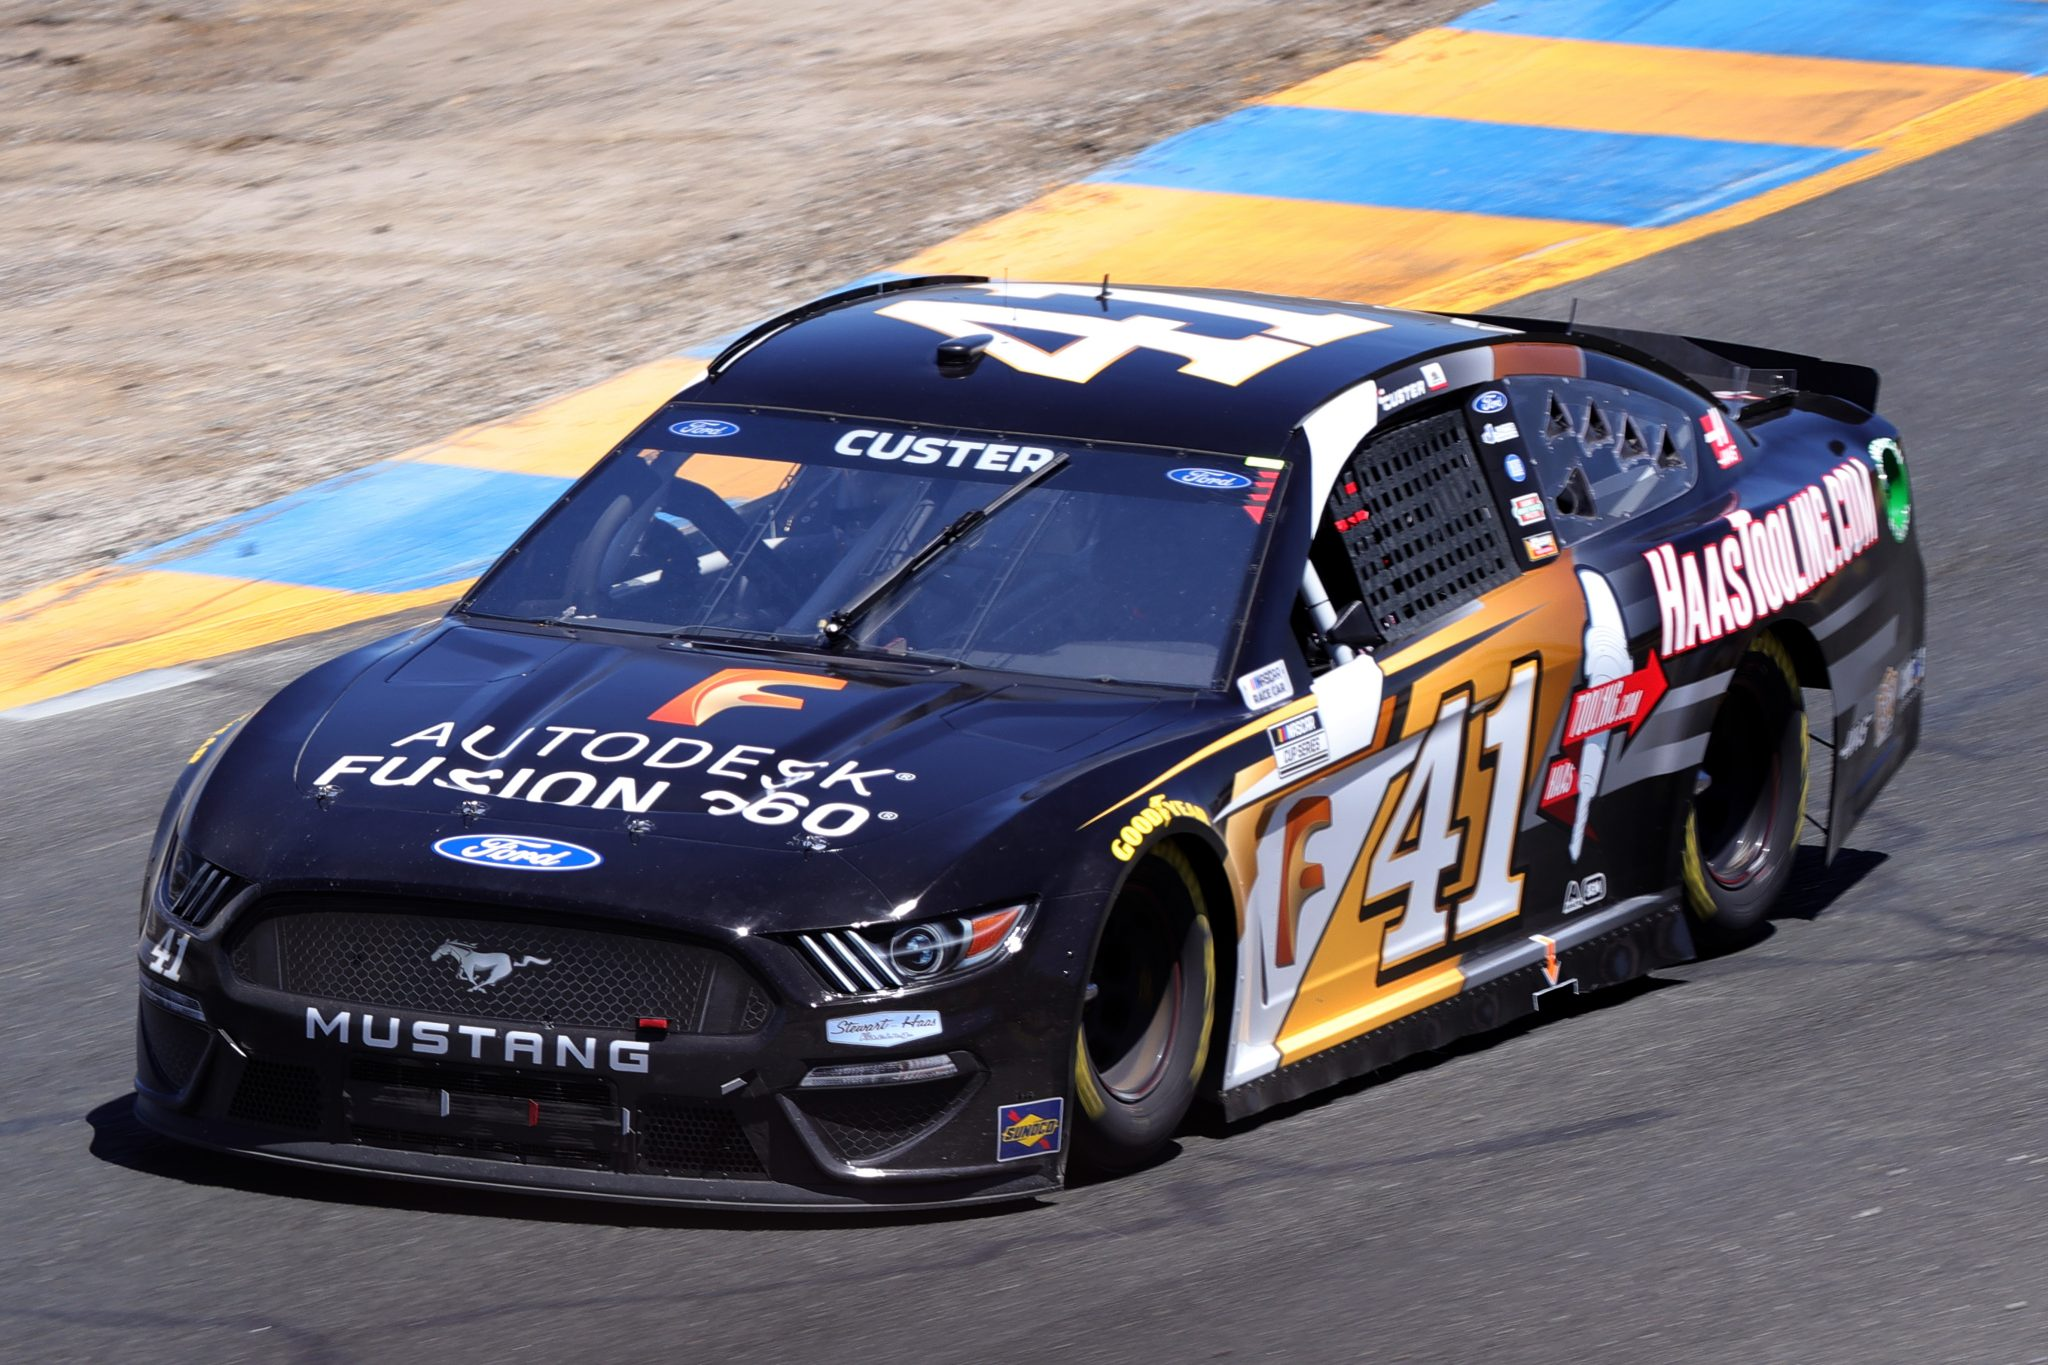 SONOMA, CALIFORNIA - JUNE 06: Cole Custer, driver of the #41 Autodesk/HaasTooling.com Ford, drives during the NASCAR Cup Series Toyota/Save Mart 350 at Sonoma Raceway on June 06, 2021 in Sonoma, California. (Photo by Carmen Mandato/Getty Images) | Getty Images